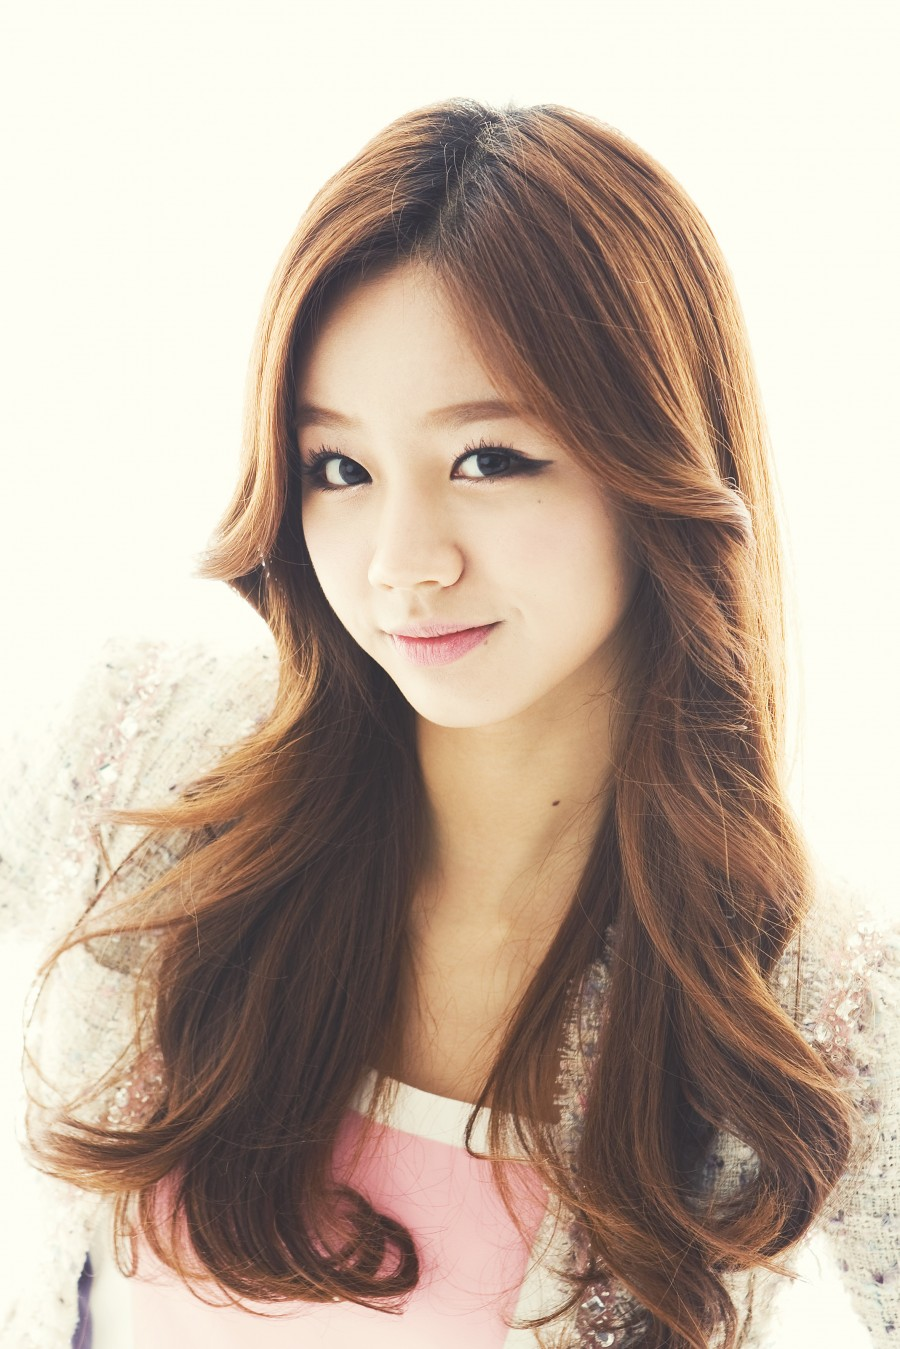 Hyeri Girl 39 S Day Kpop 94 Line Photo 36664882 Fanpop